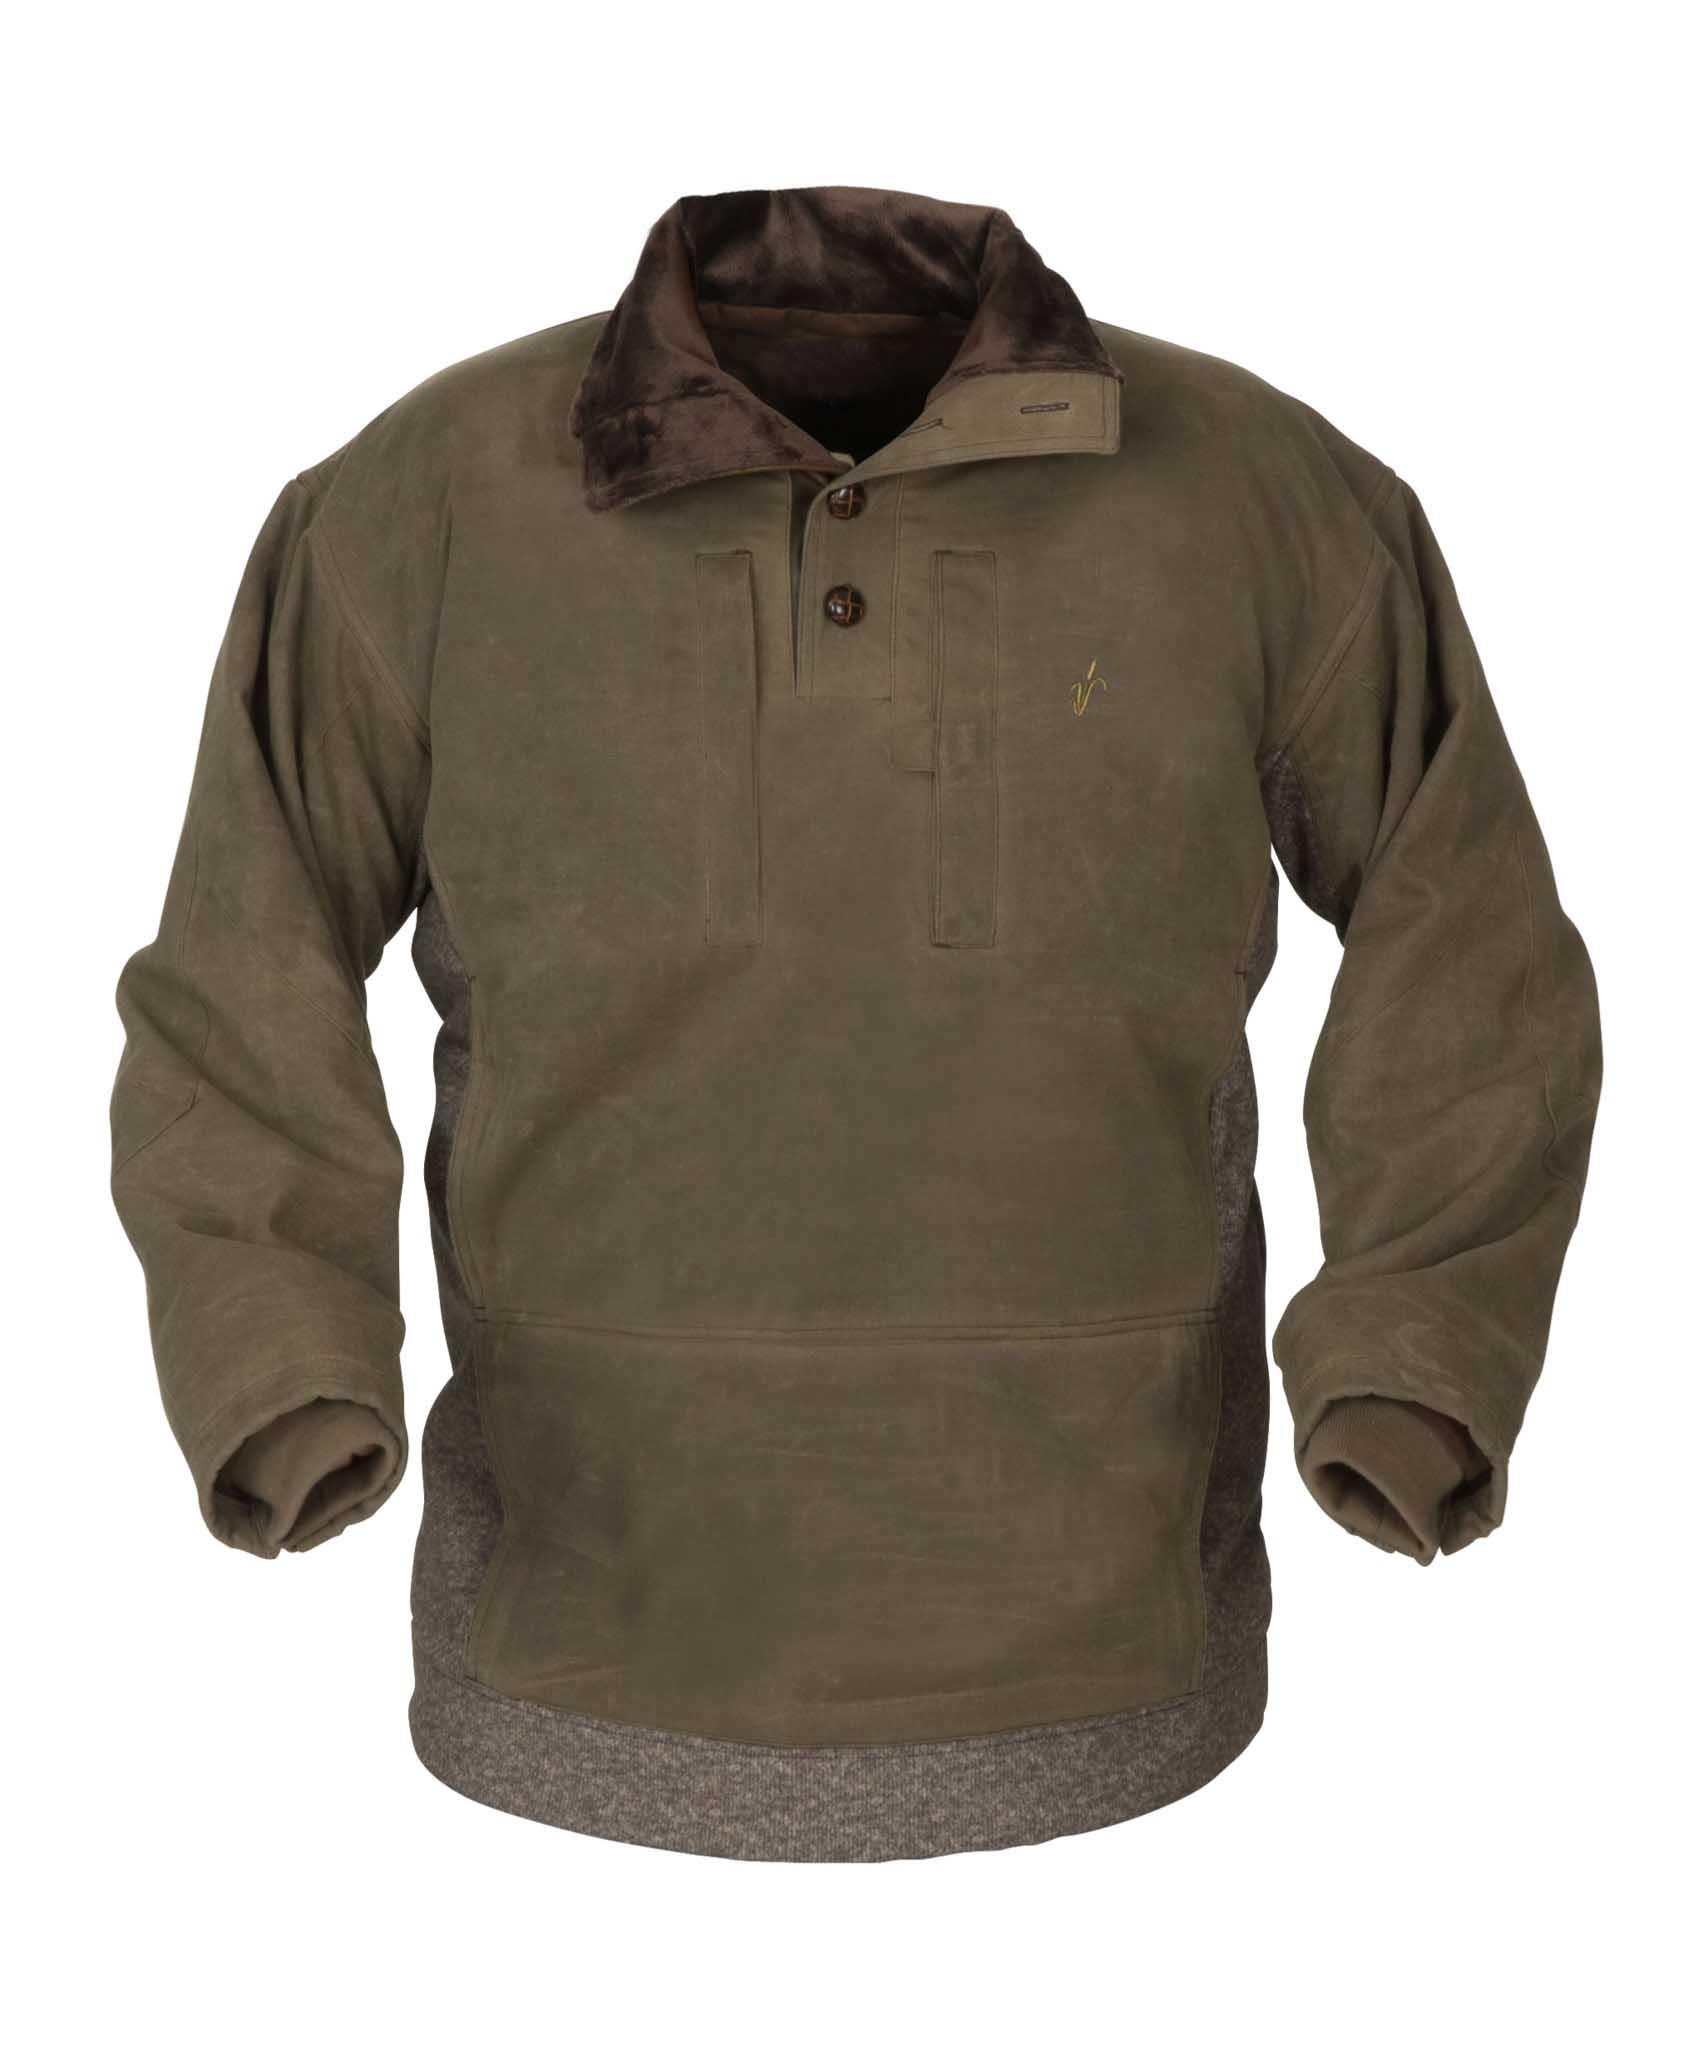 Avery Heritage Waterfowl Sweater, Olive Drab